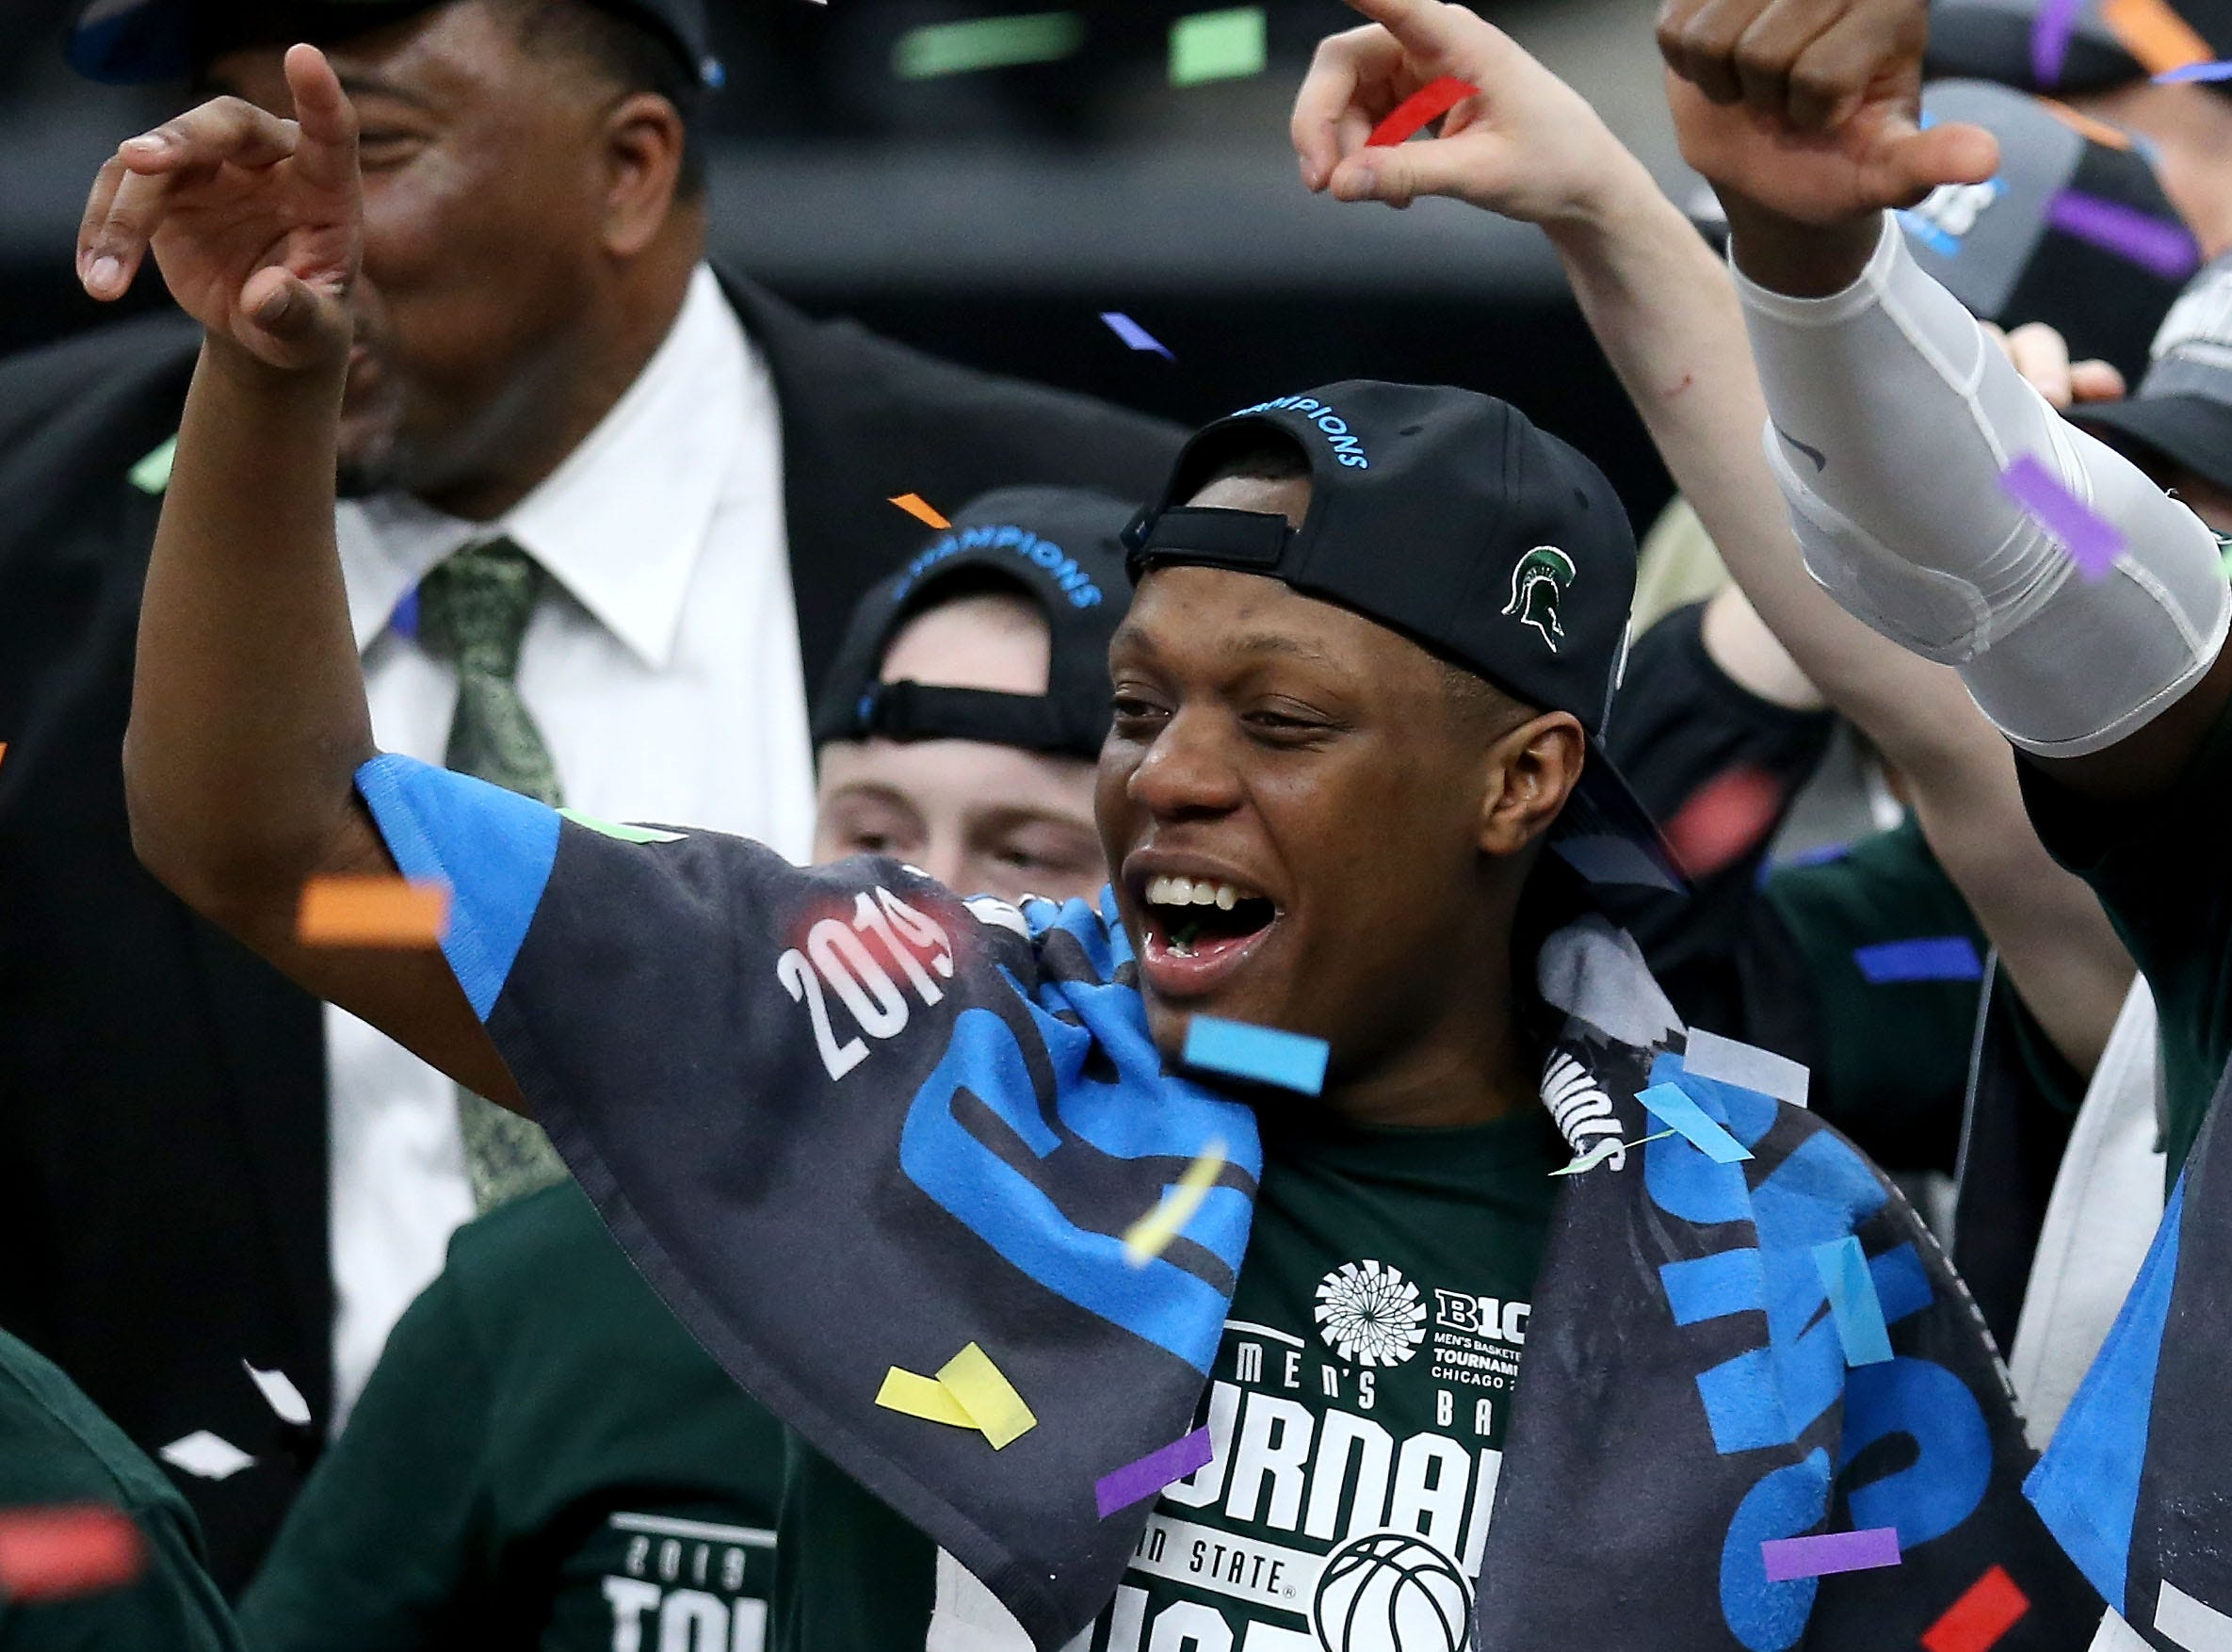 CHICAGO, ILLINOIS - MARCH 17:  Cassius Winston #5 of the Michigan State Spartans celebrates after beating the Michigan Wolverines 65-60 in the championship game of the Big Ten Basketball Tournament at the United Center on March 17, 2019 in Chicago, Illinois. (Photo by Dylan Buell/Getty Images)